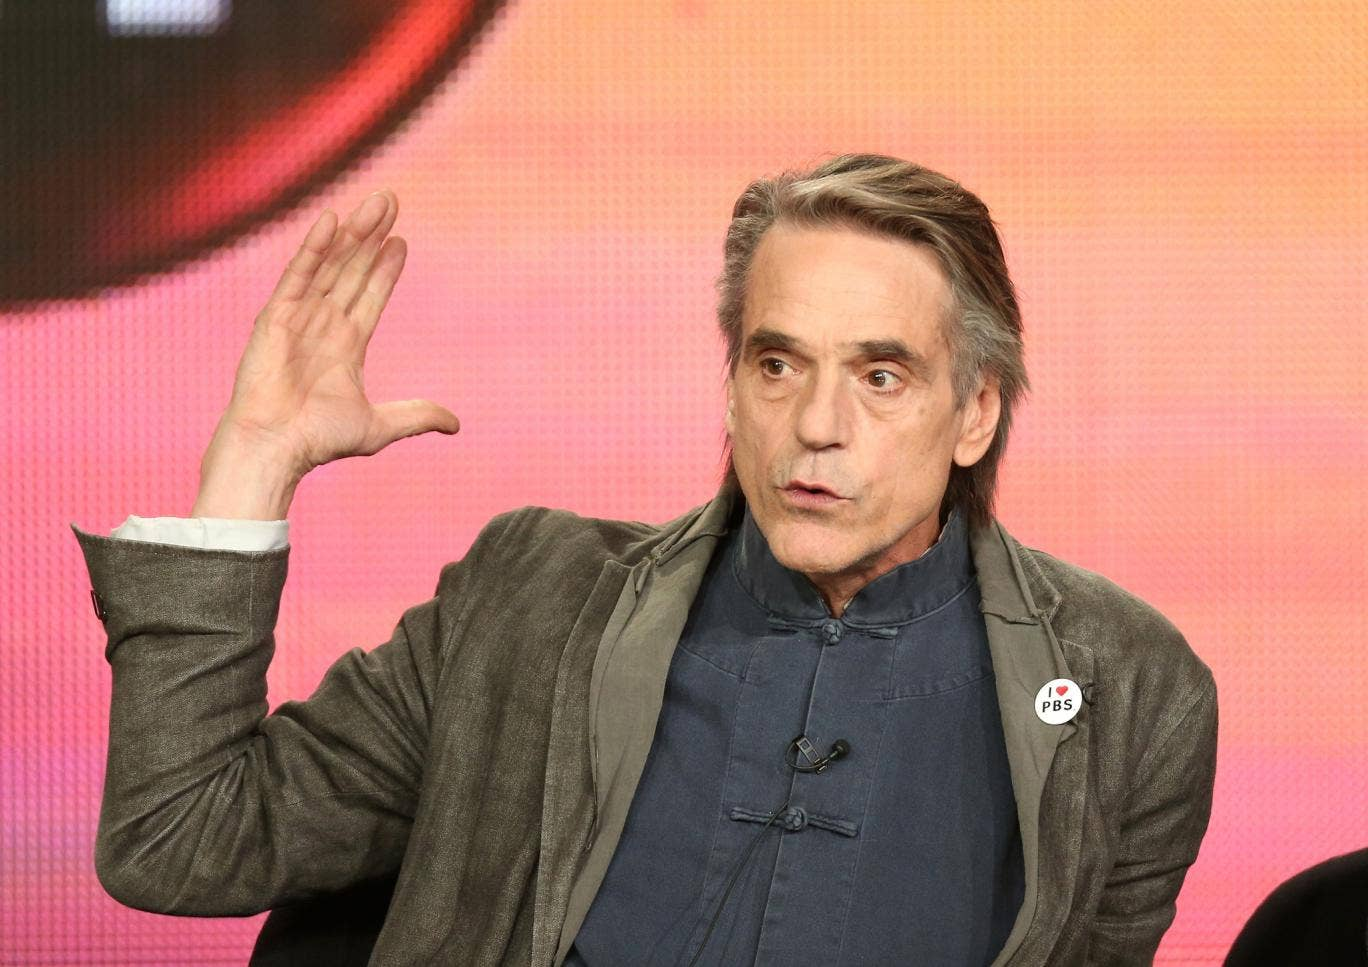 Jeremy Irons: 'I think we're very robust as human beings. I had people when I was younger trying to feel me up. Older men. I just told them to get lost.'